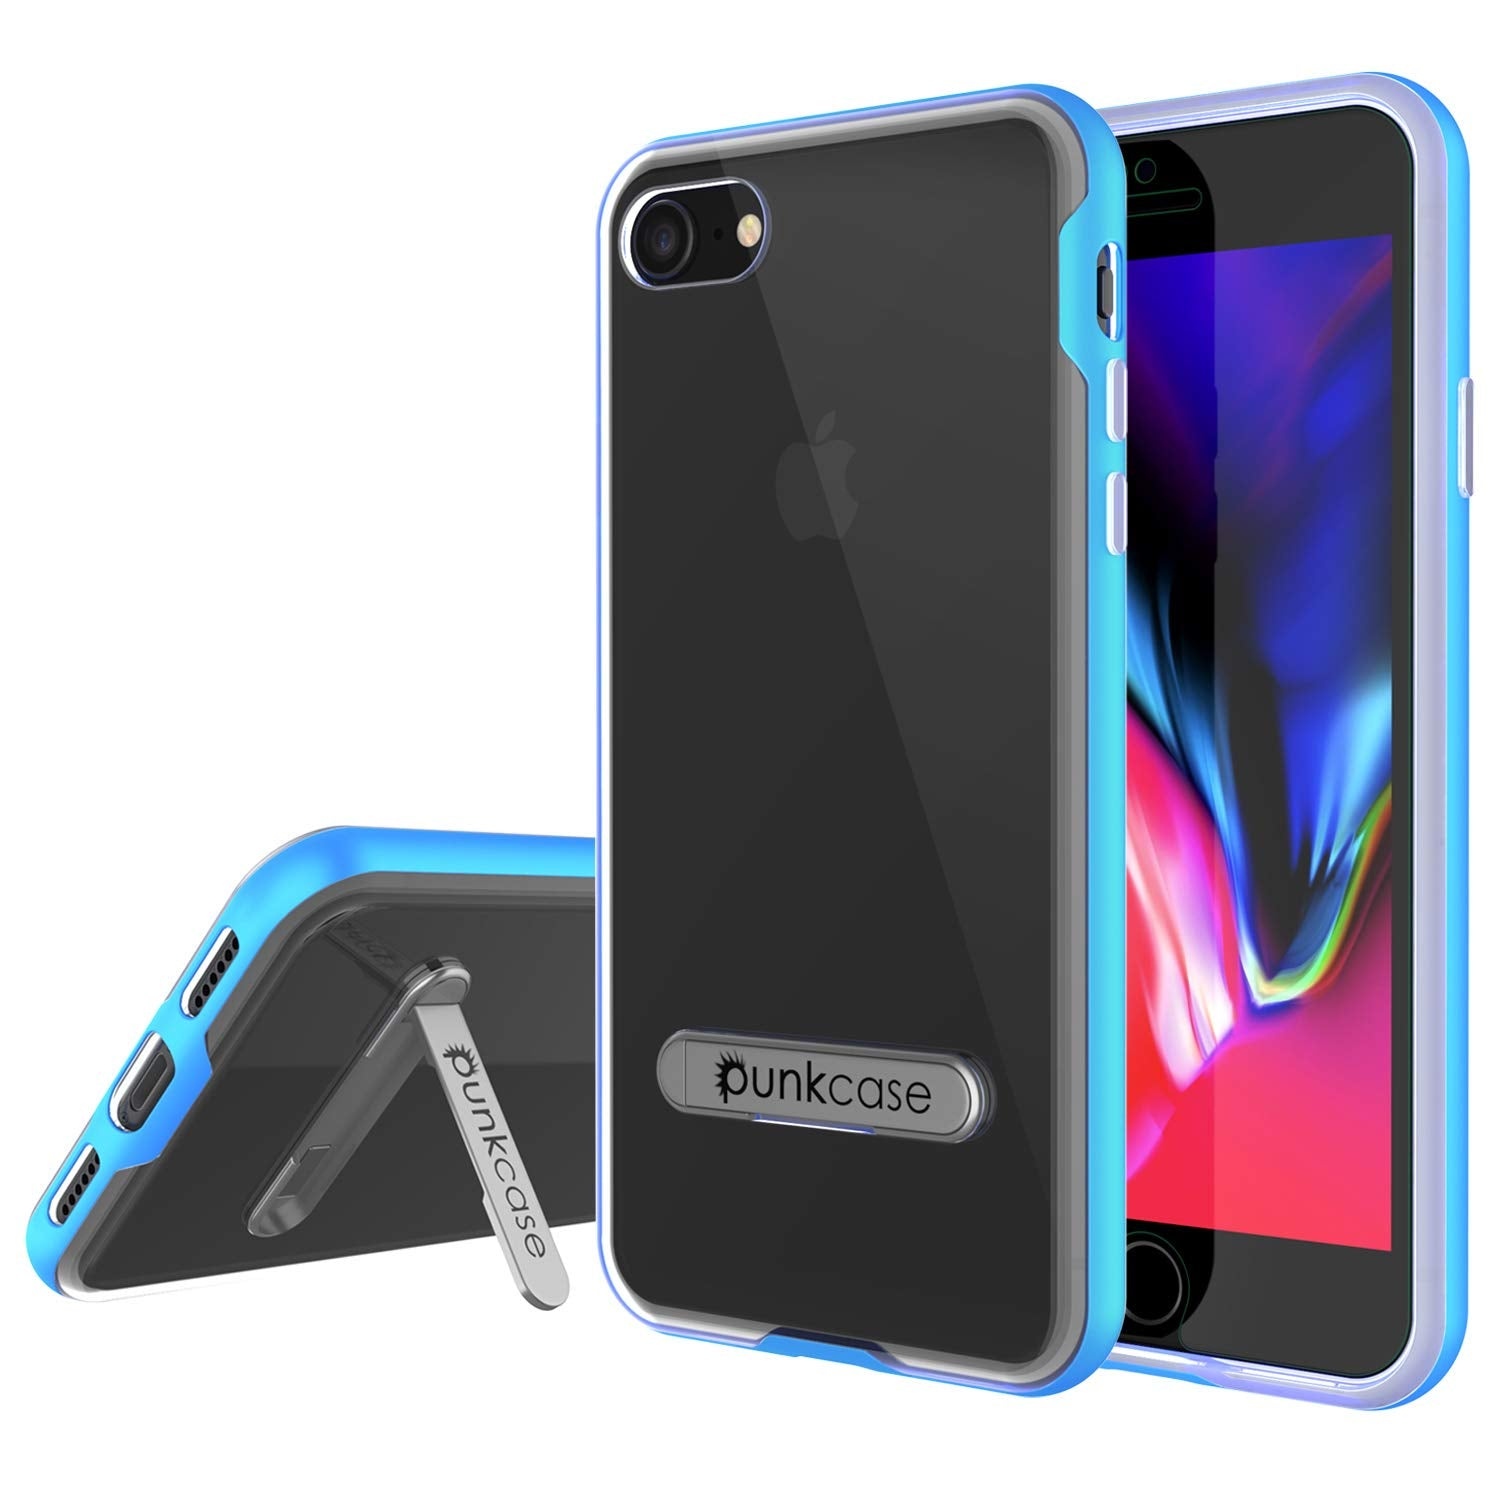 low priced b7d65 aefd0 PunkCase iPhone 8 Lucid 3.0 Screen Protector W/ Anti-Shock Case [Blue]